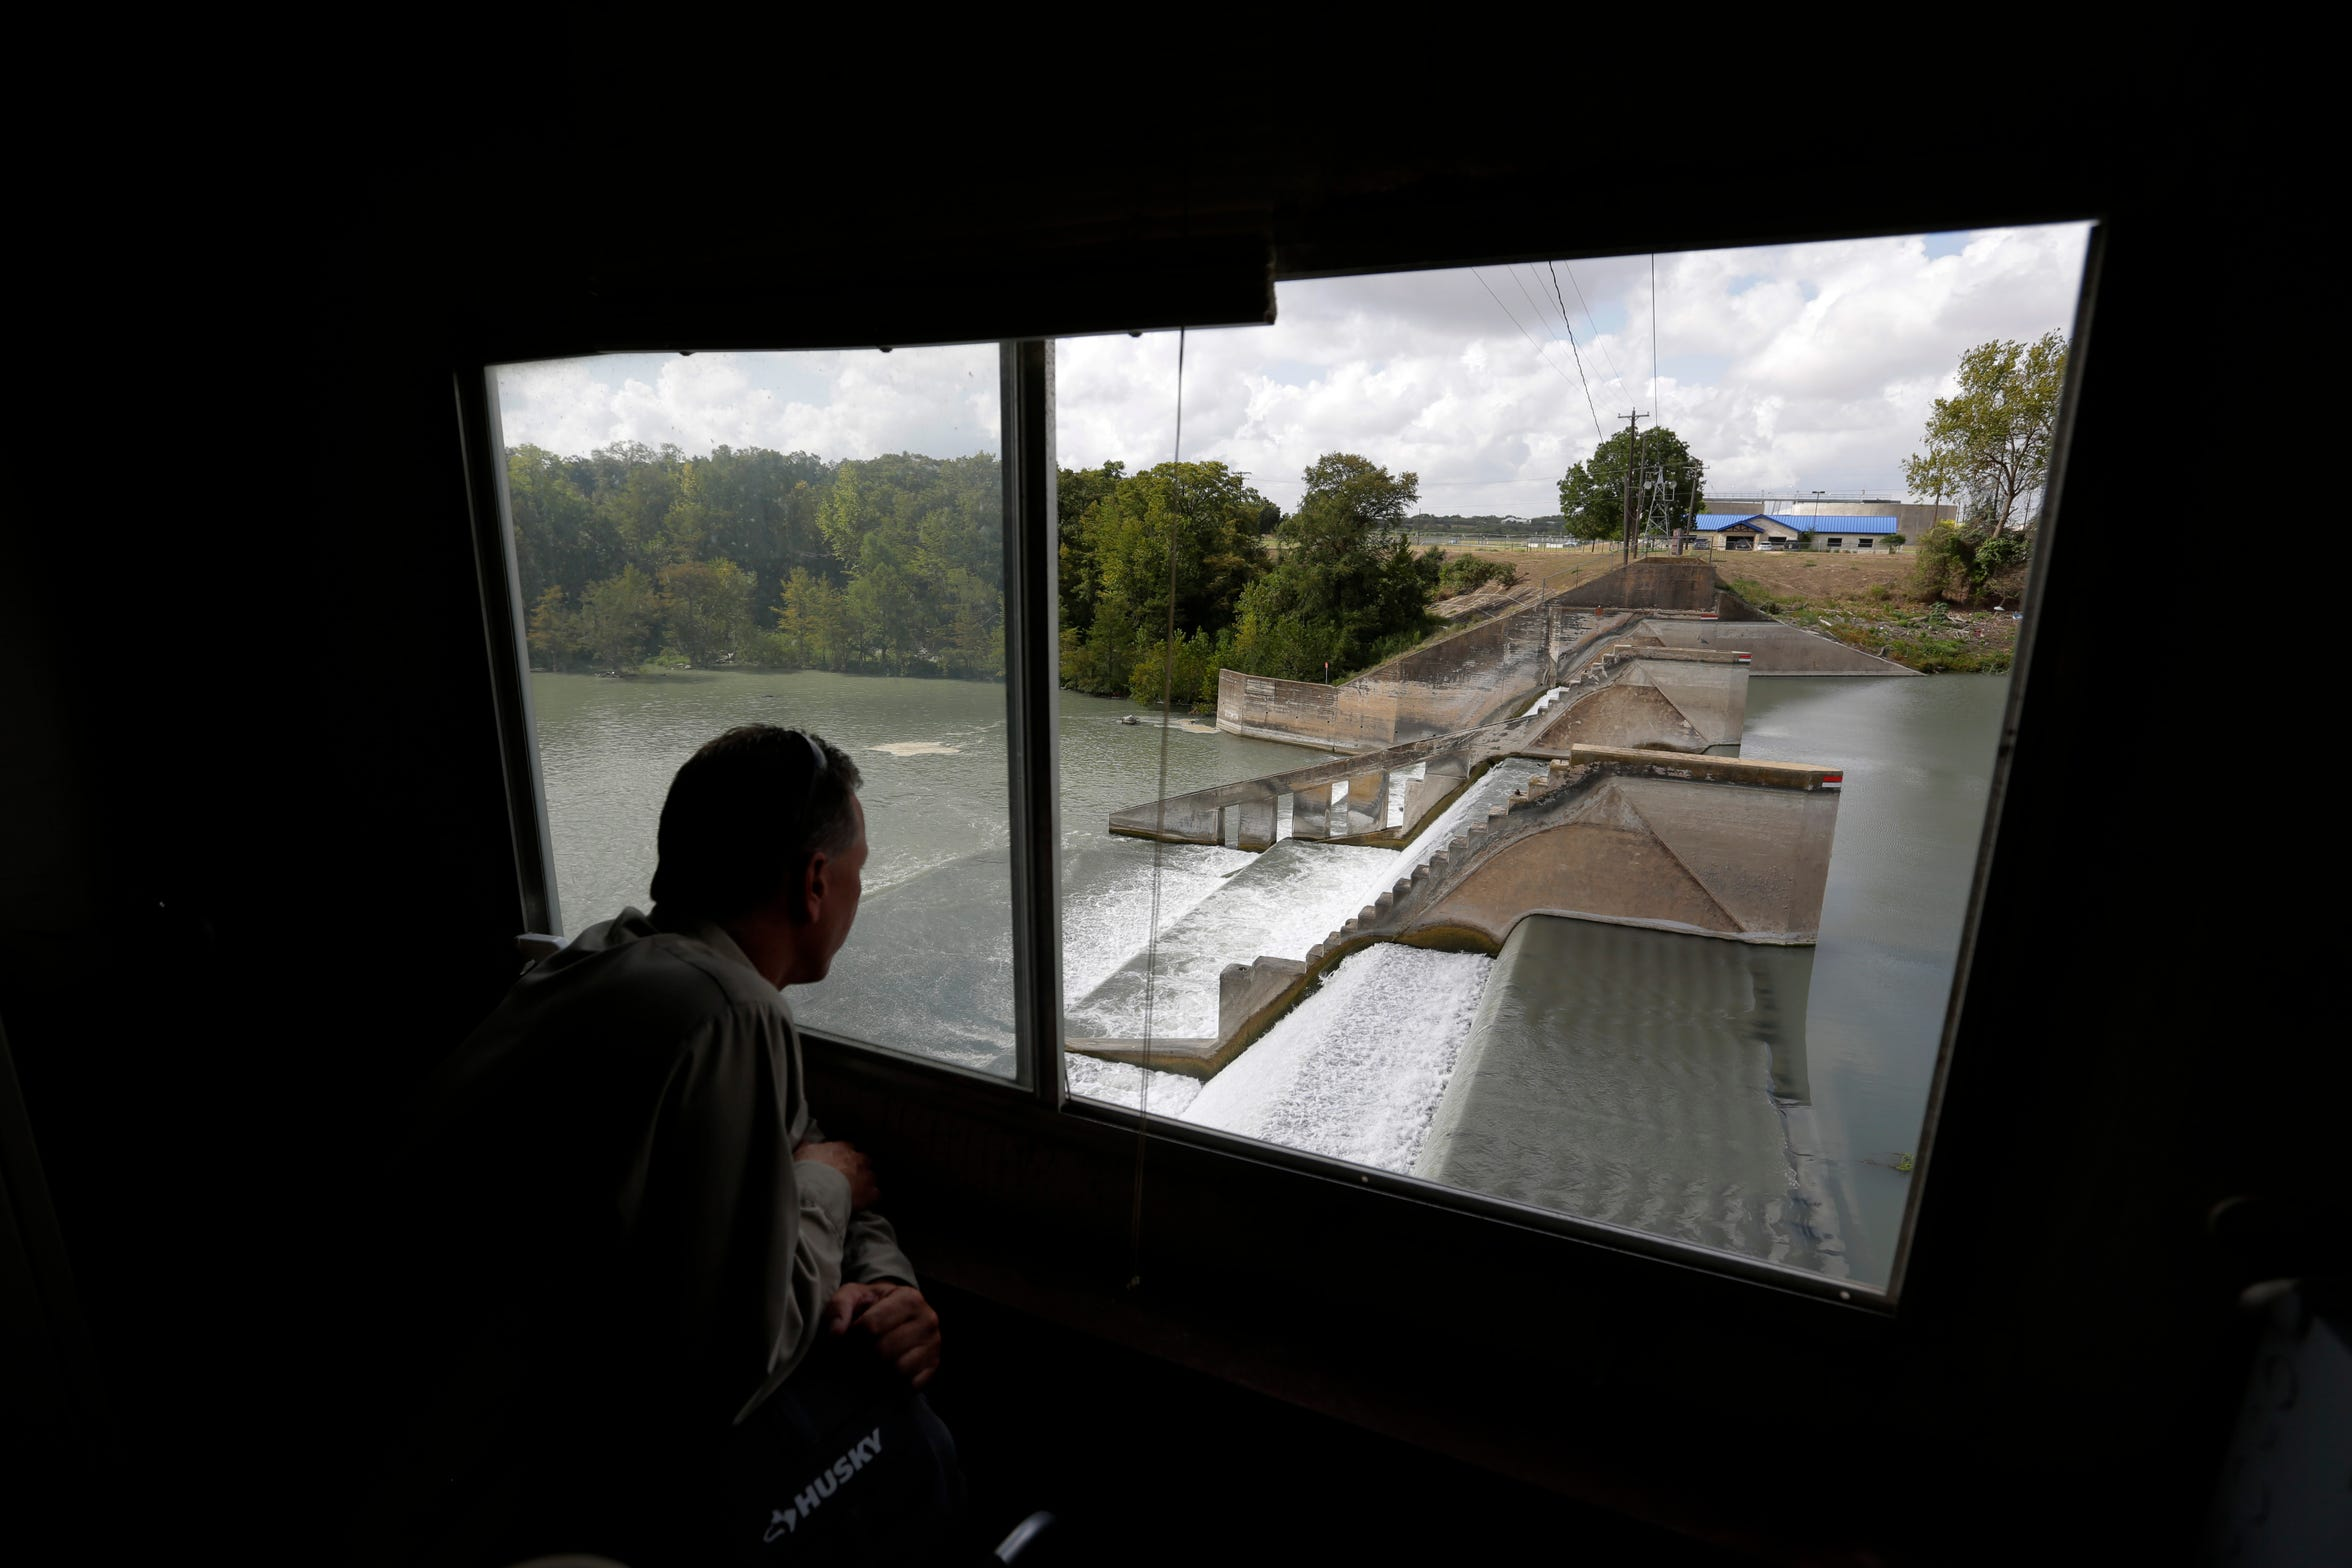 Guadalupe-Blanco River Authority's John Moryl looks over the spill gates at Lake Dunlap, Oct. 2, 2019, in Lake Dunlap, Texas. One of the spill gates at the dam failed in May and the lake drained down to the original channel of the Guadalupe River. (AP Photo/Eric Gay)